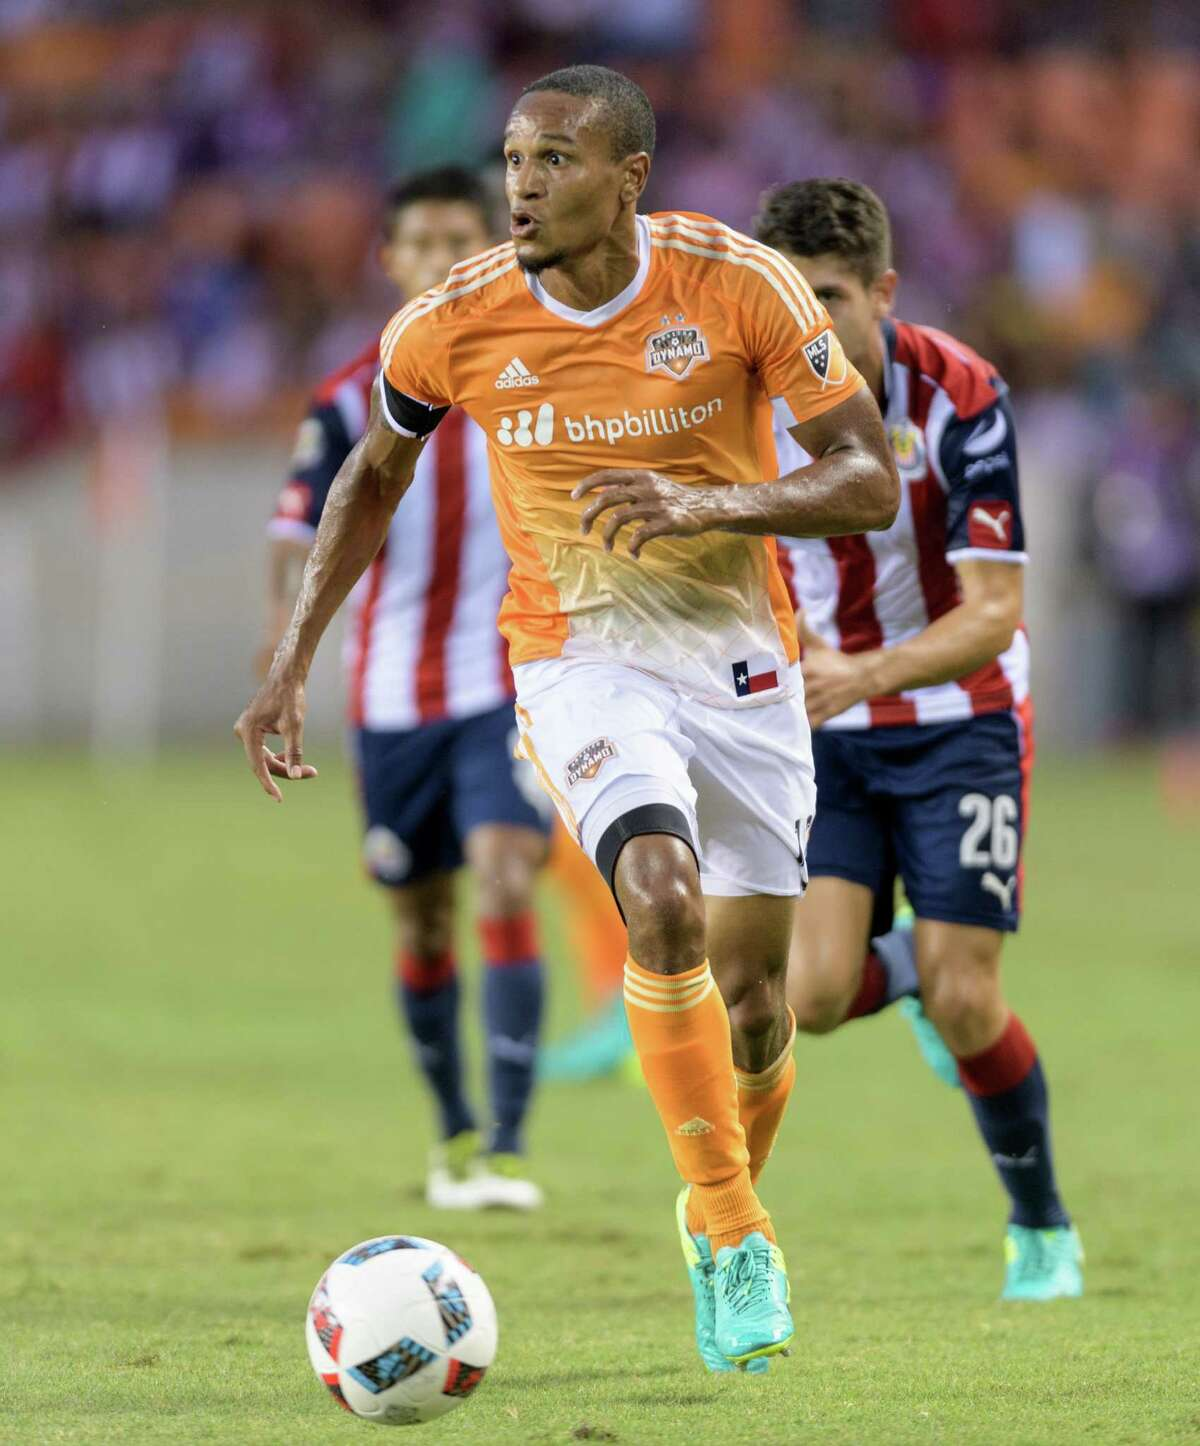 Ricardo Clark (13) of the Houston Dynamo brings the ball up the field in the first half against C. D. Guadalajara in a friendly soccer match on Sunday, September 4, 2016 at BBVA Compass Stadium in Houston Texas.